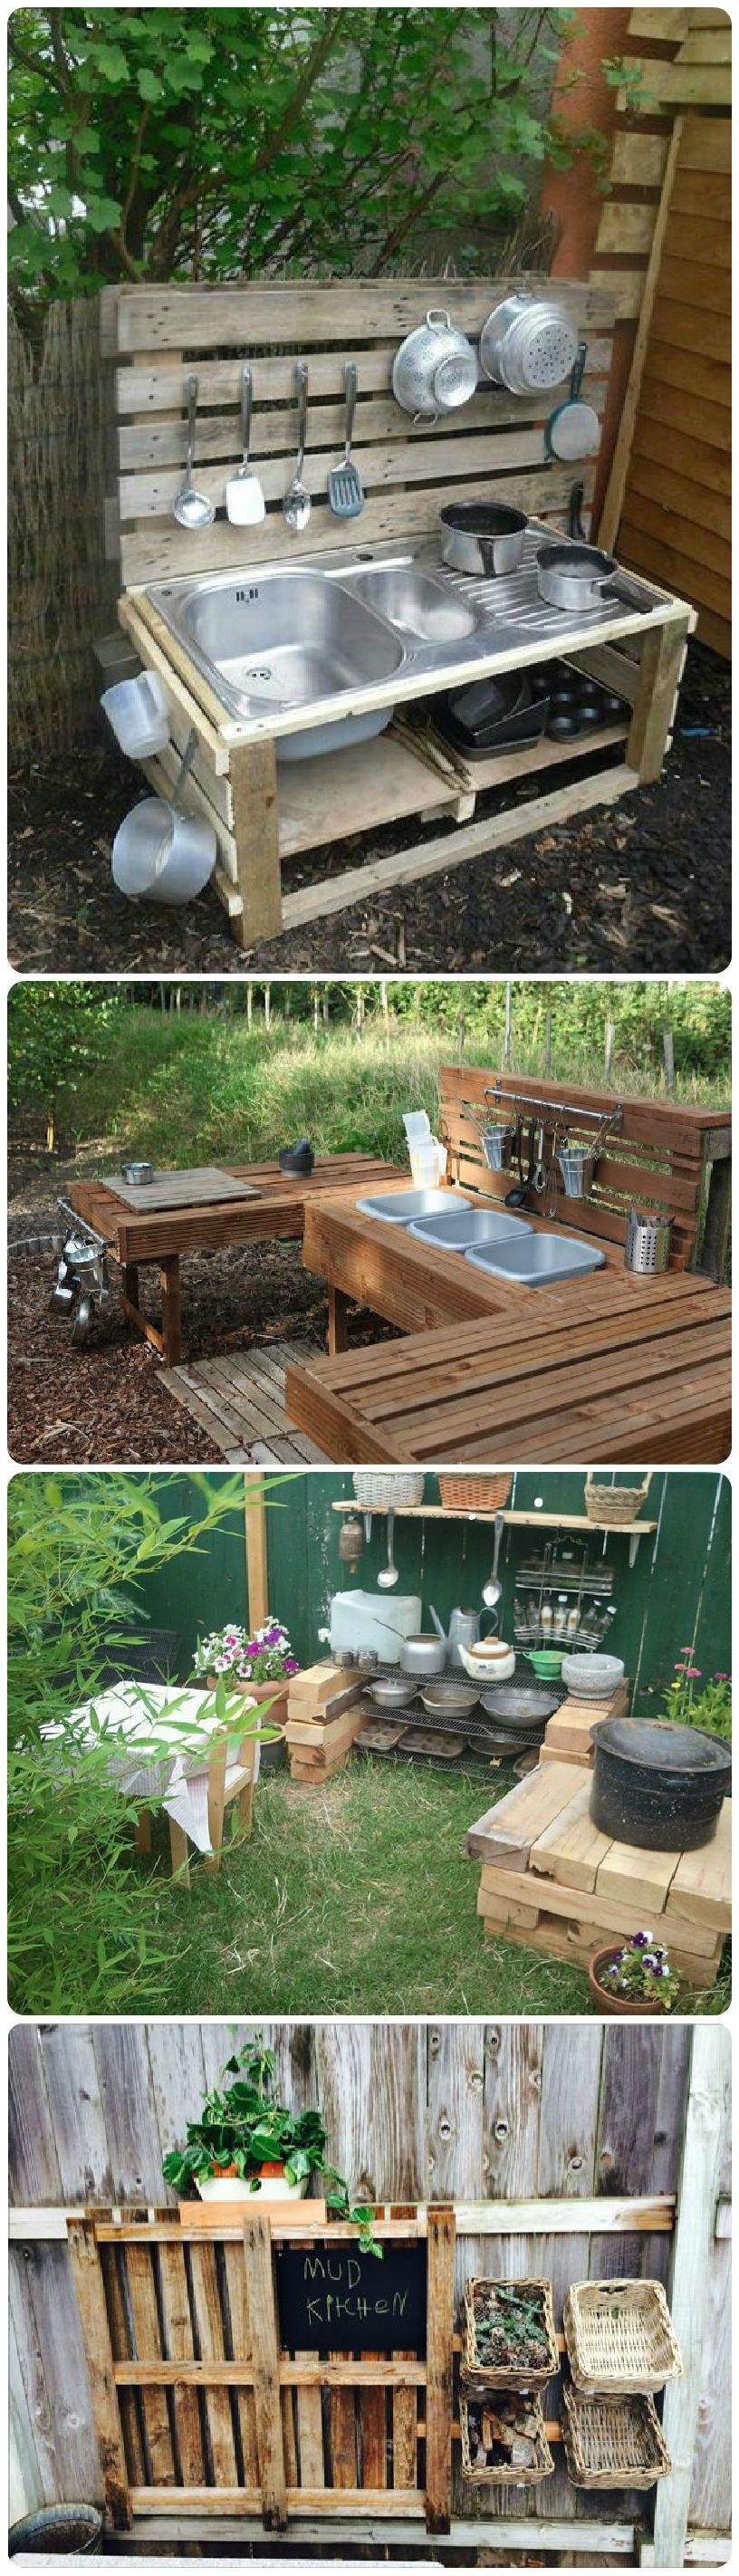 Outdoor Küche Für Kinder 20 Mud Kitchen Ideas For Kids Gartenideen Für Kinder